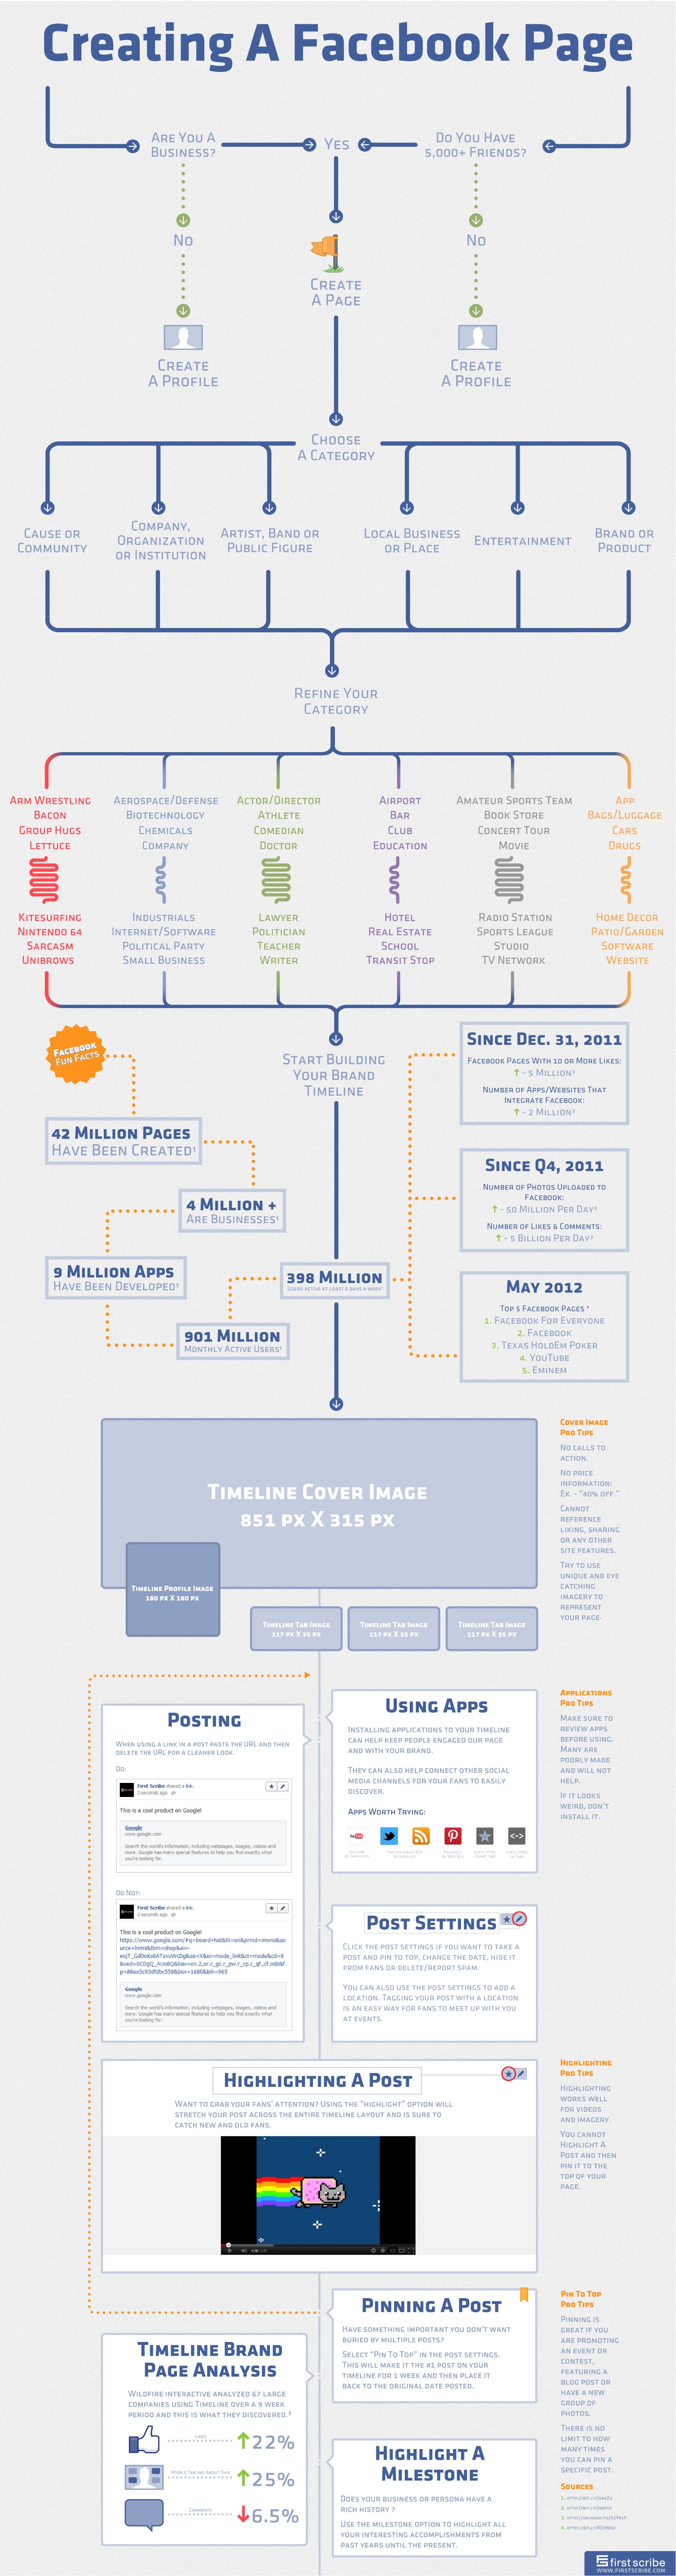 create-a-facebook-page-infographic